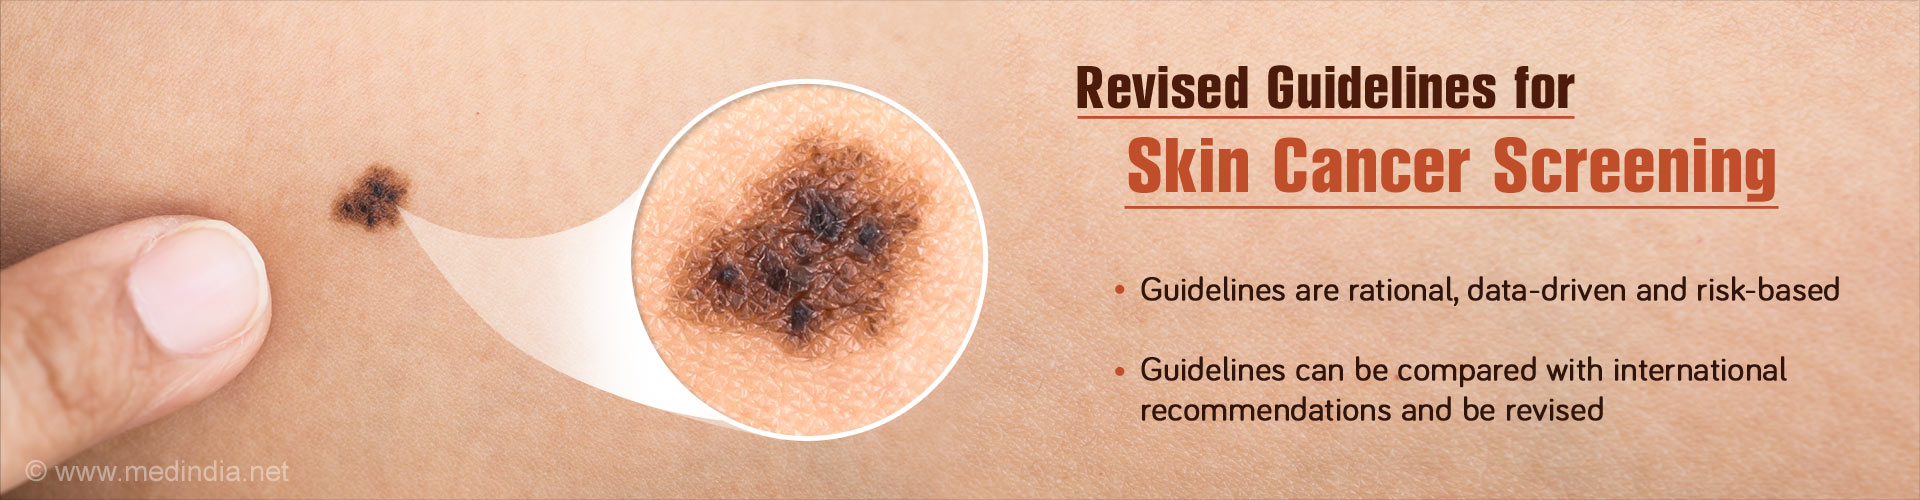 Skin Cancer Screening : Data-Driven Guidelines Proposed